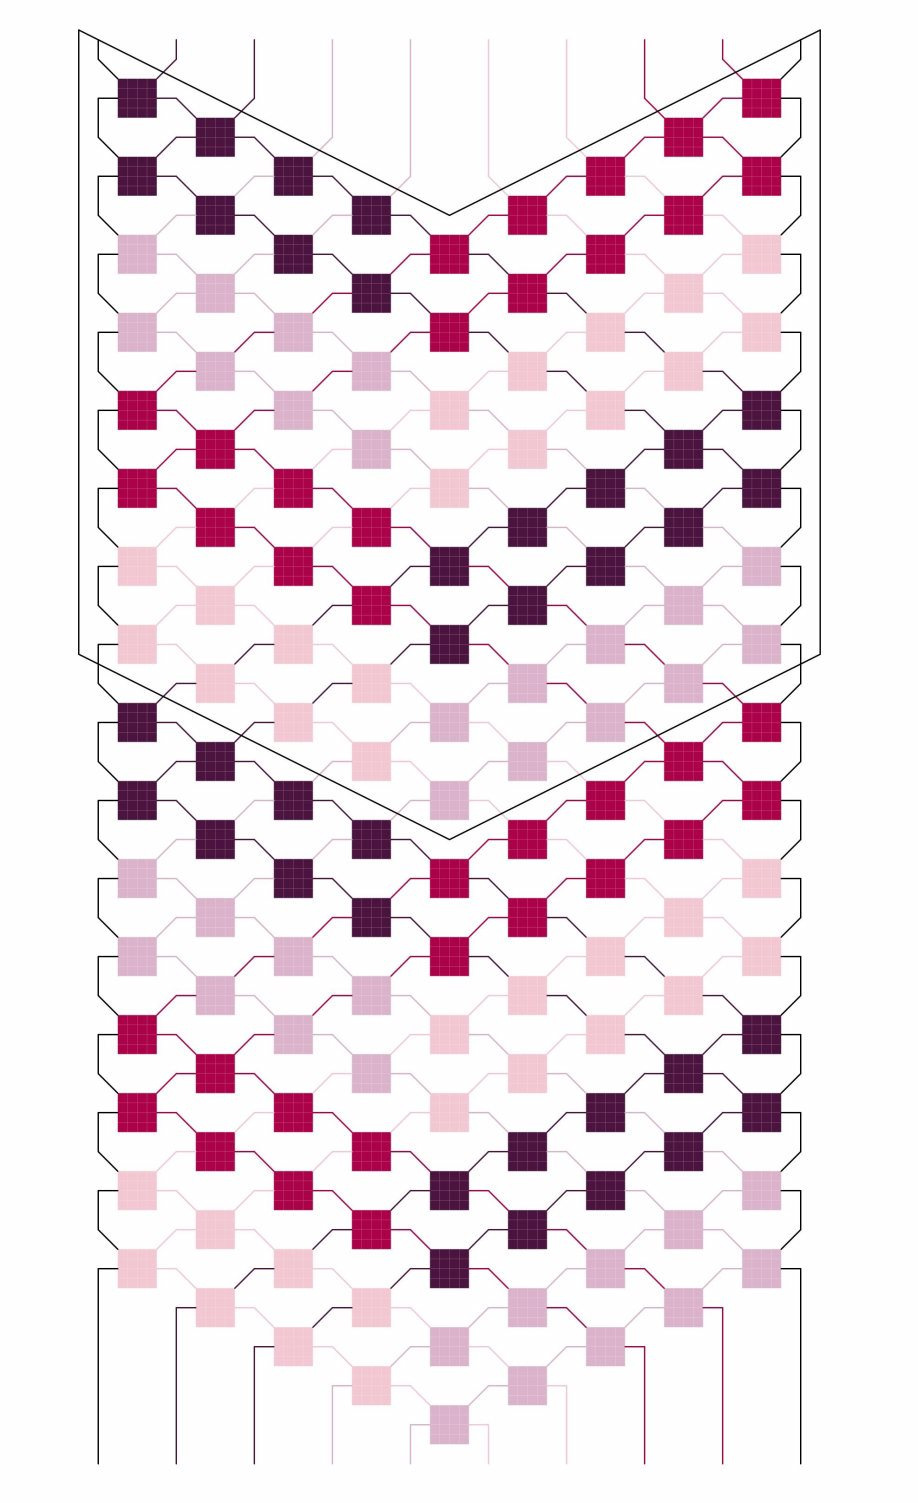 4-Colored stripes pattern